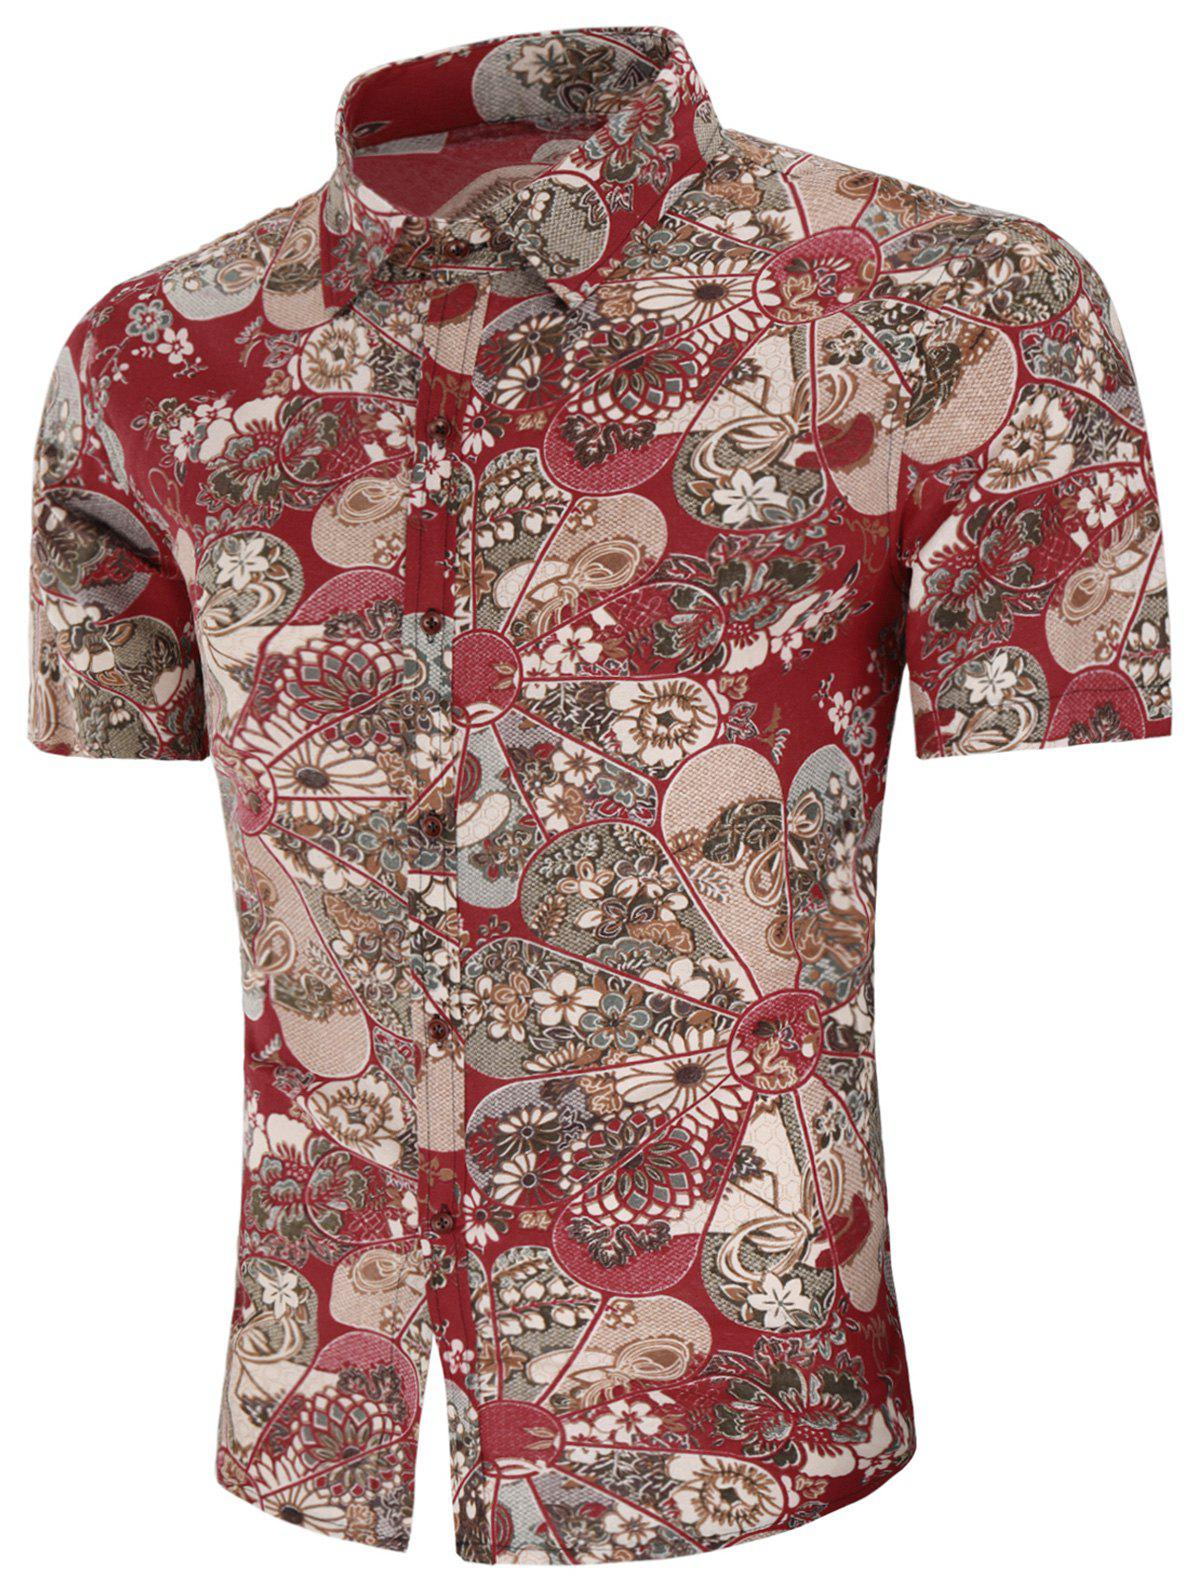 All Over Floral Print Button Up Shirt - multicolor 4XL